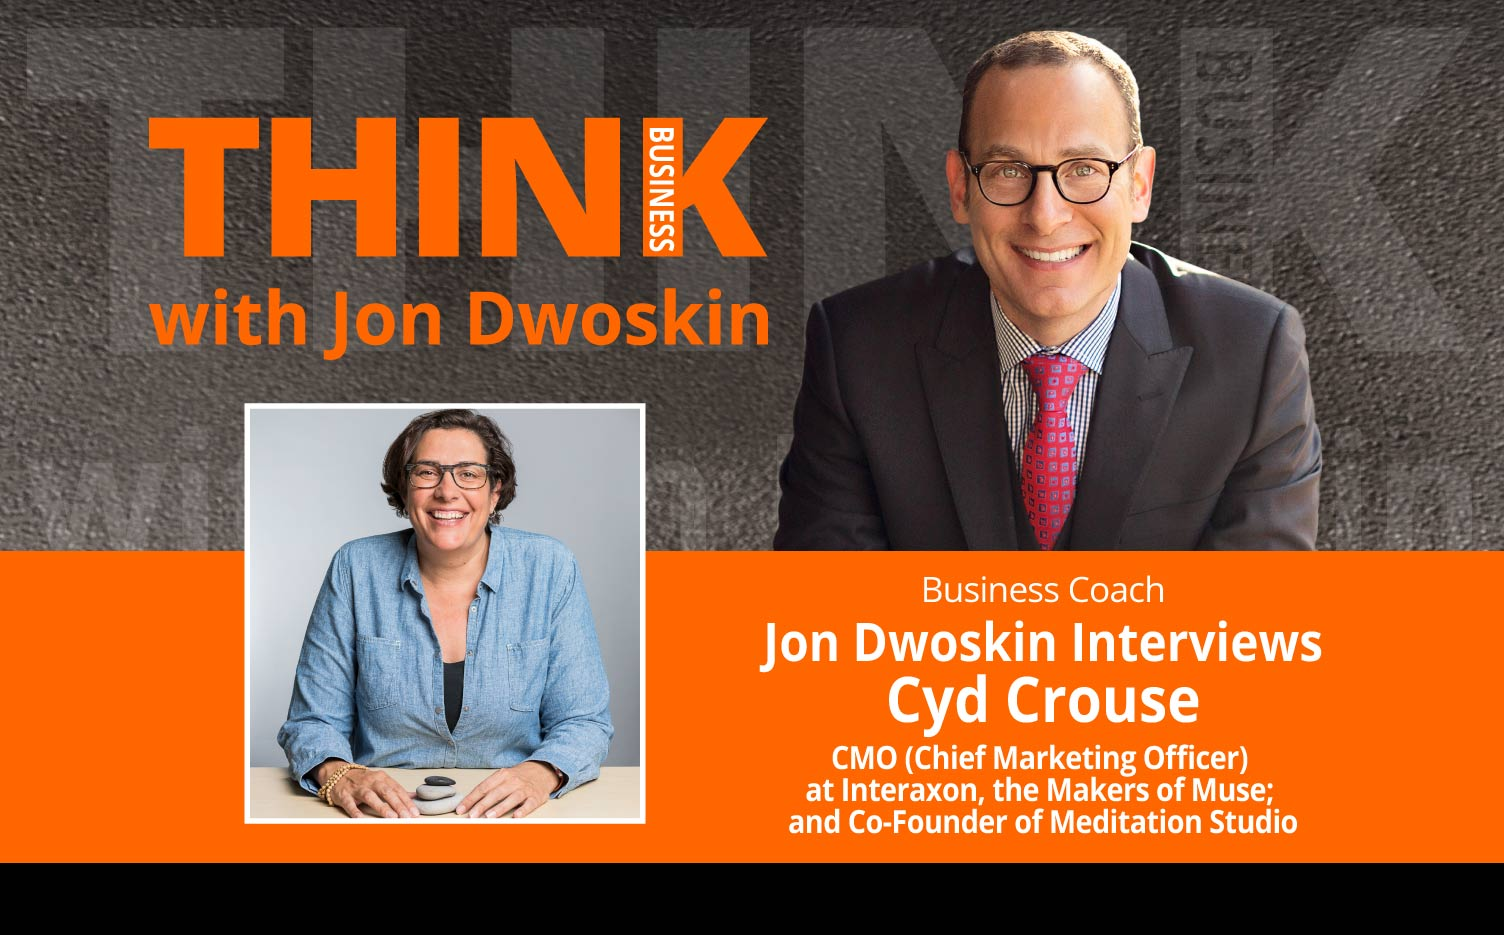 THINK Business Podcast: Jon Dwoskin Interviews Cyd Crouse, CMO (Chief Marketing Officer) at Interaxon, the Makers of Muse; and Co-Founder of Meditation Studio